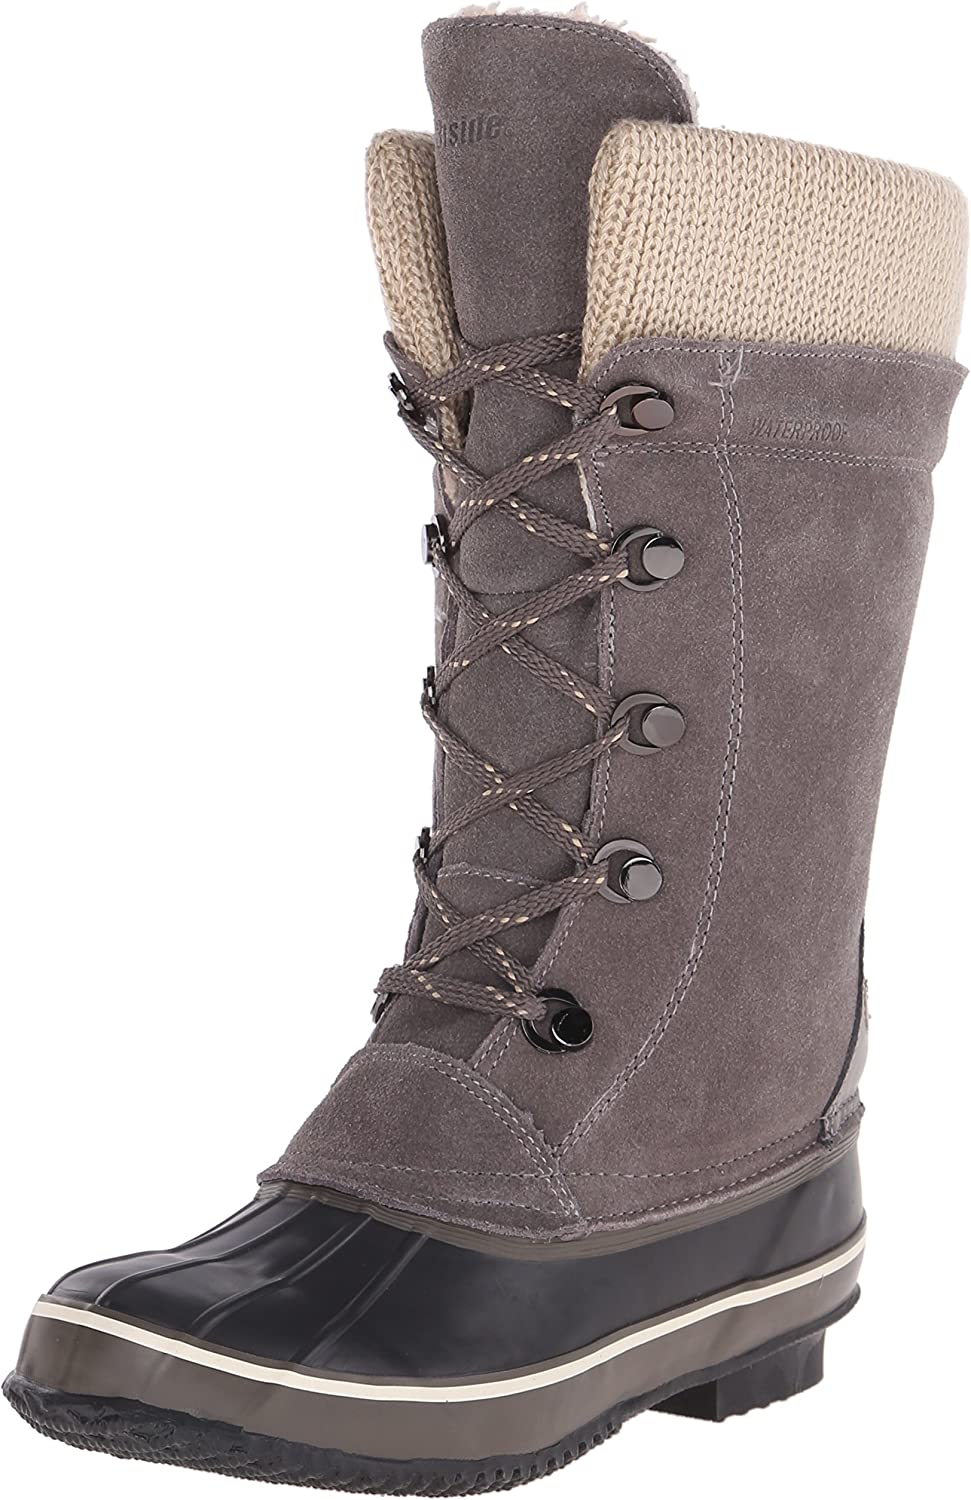 Northside Women's Sun Peak Waterproof Cold Weather Boot